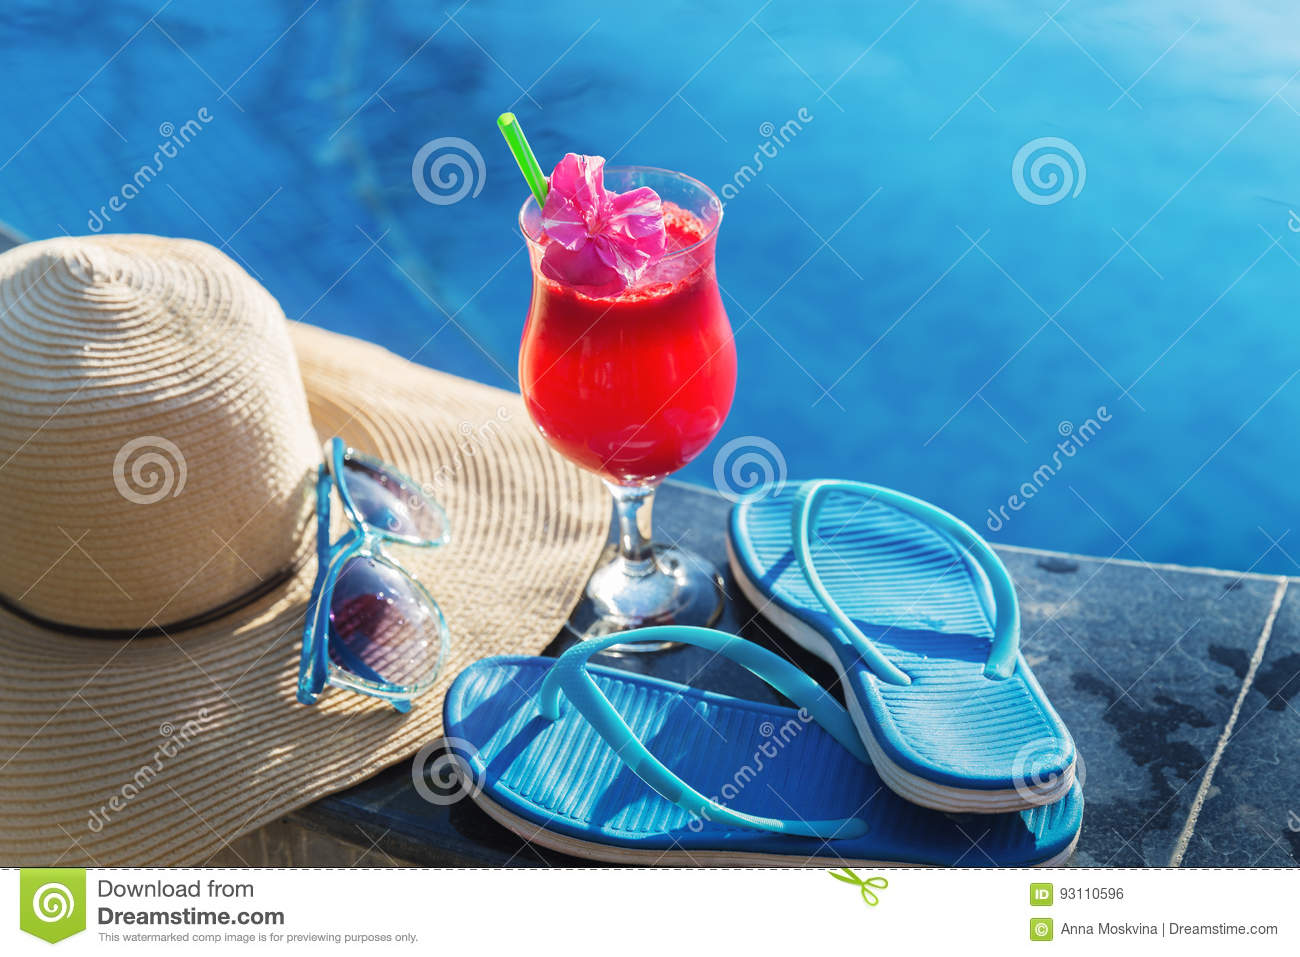 Watermelon Juice Smoothie Drink Glass Sunglasses Stock Photo Image 93110596